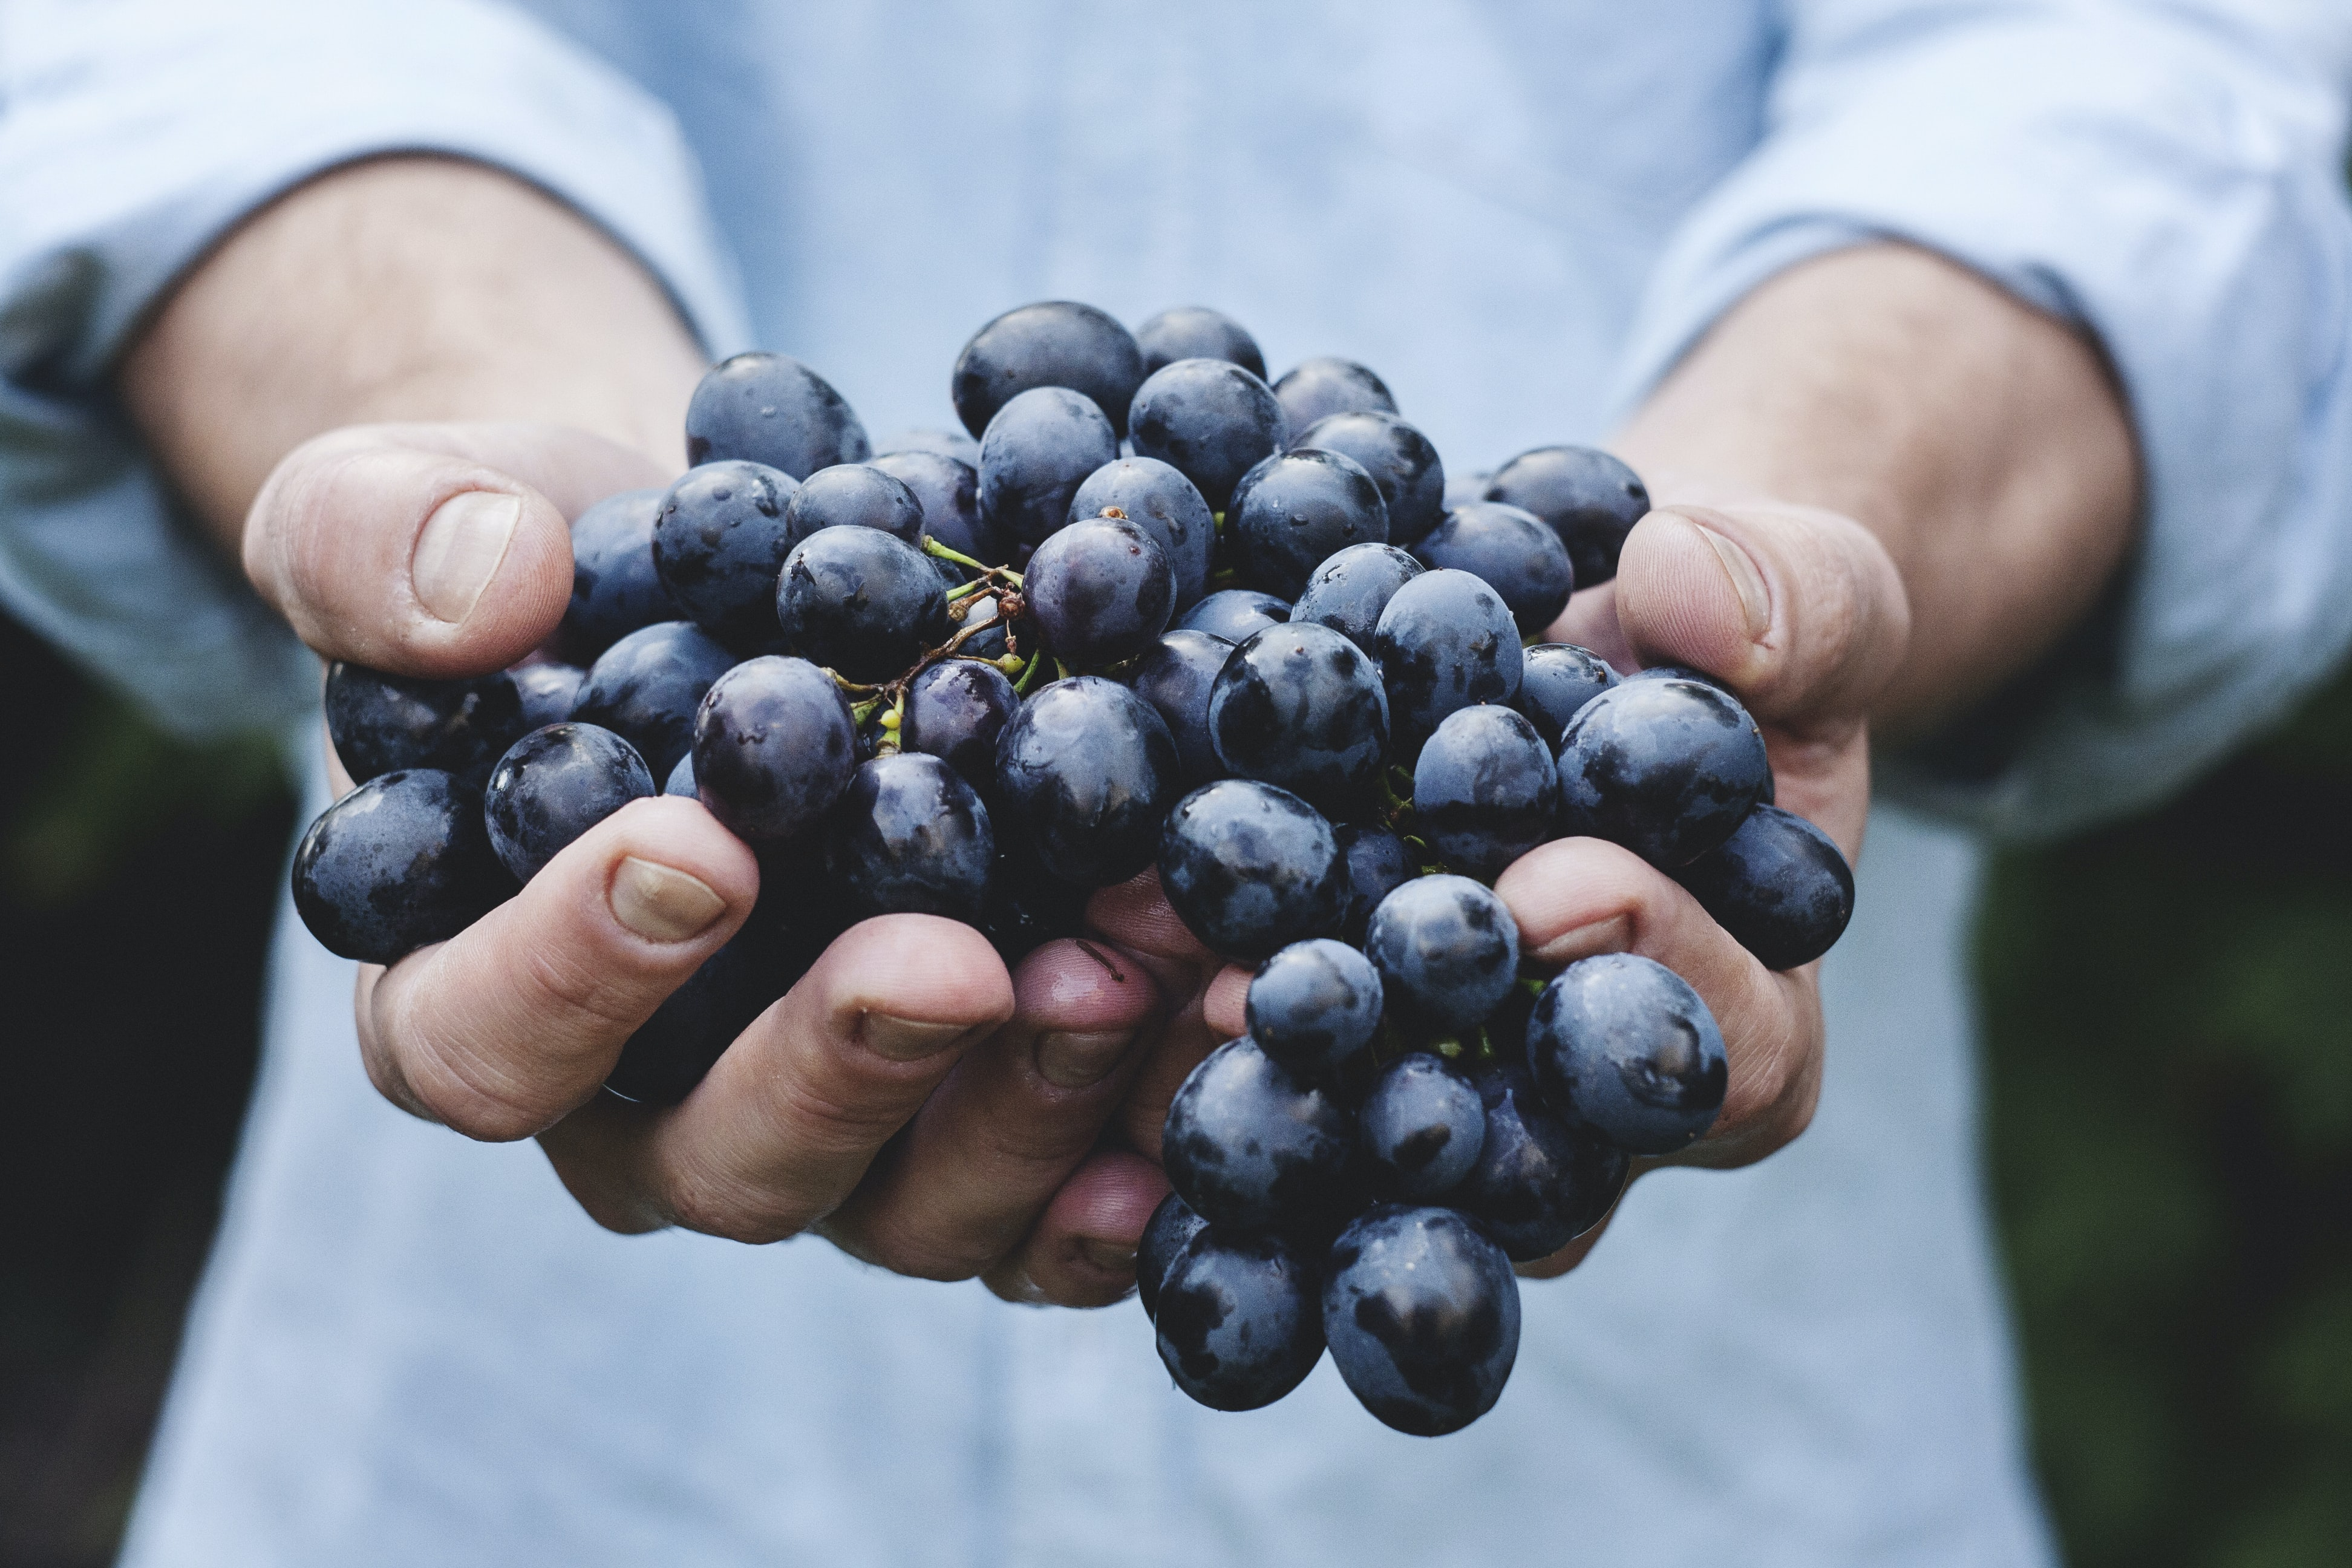 A person holding out a large bunch of black grapes